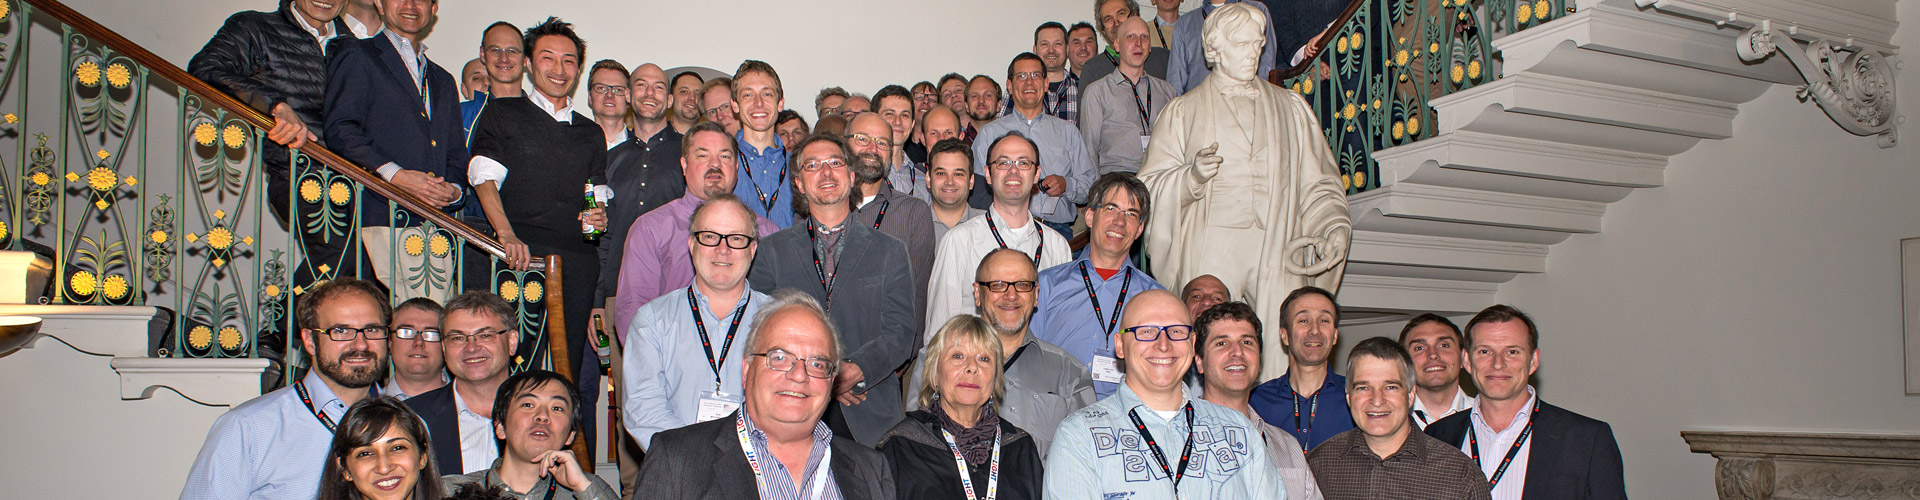 At the Spring 2015 International Vision Standards Meeting, the chairs of the industrial vision standards set out their roadmaps for the future of the vision industry